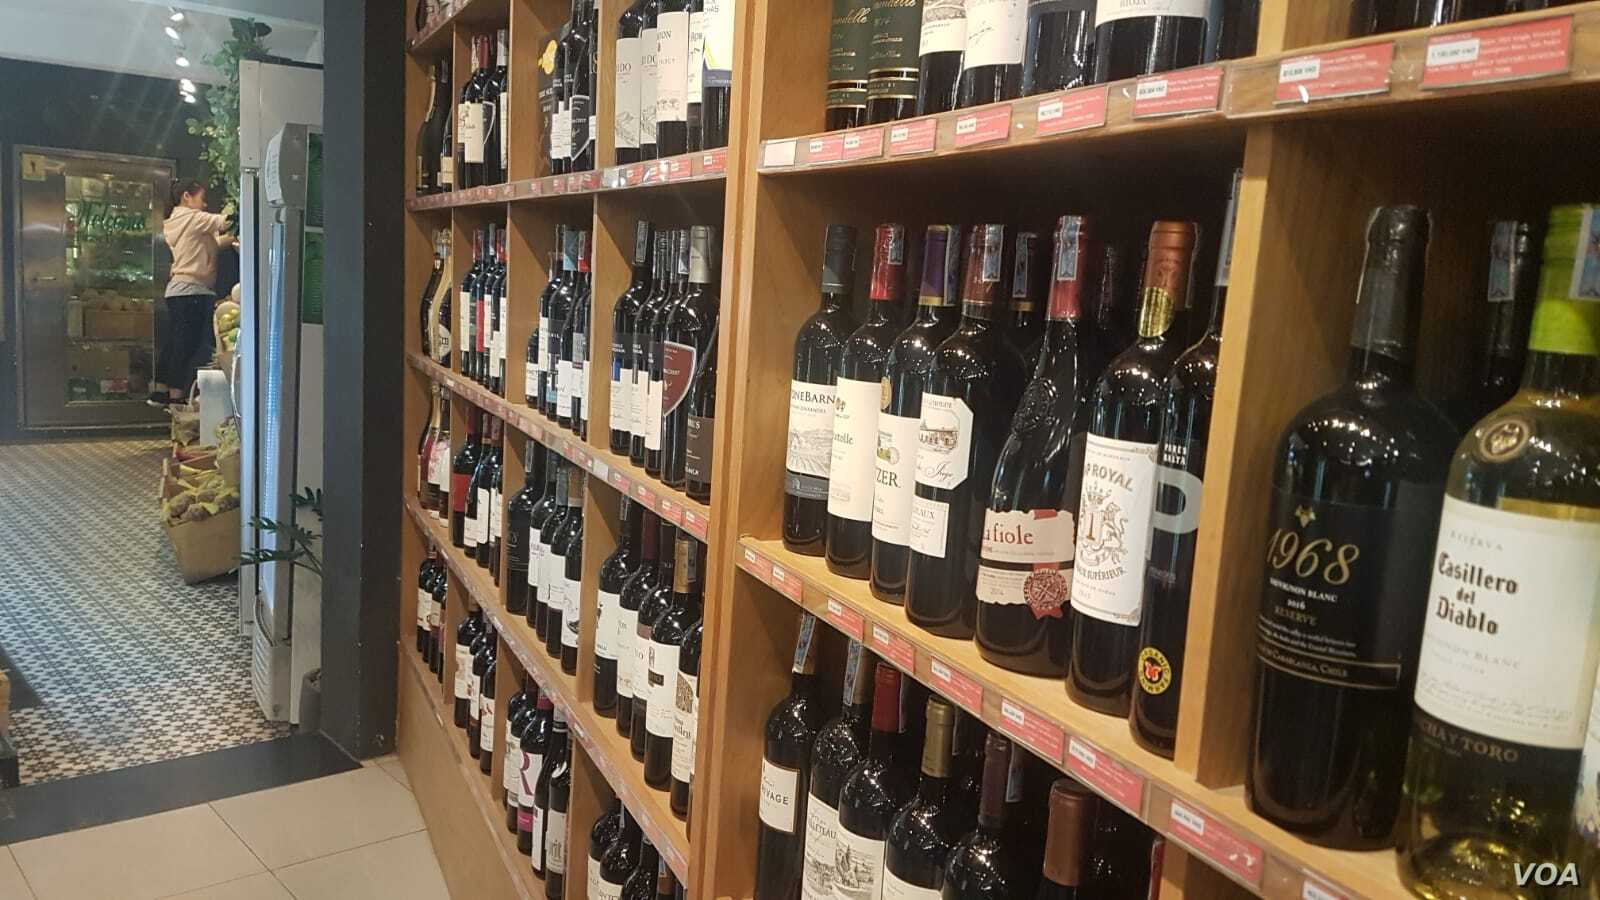 More European wine could appear on Vietnamese shelves, like at this store in Ho Chi Minh City, if the two sides finalize a trade deal.